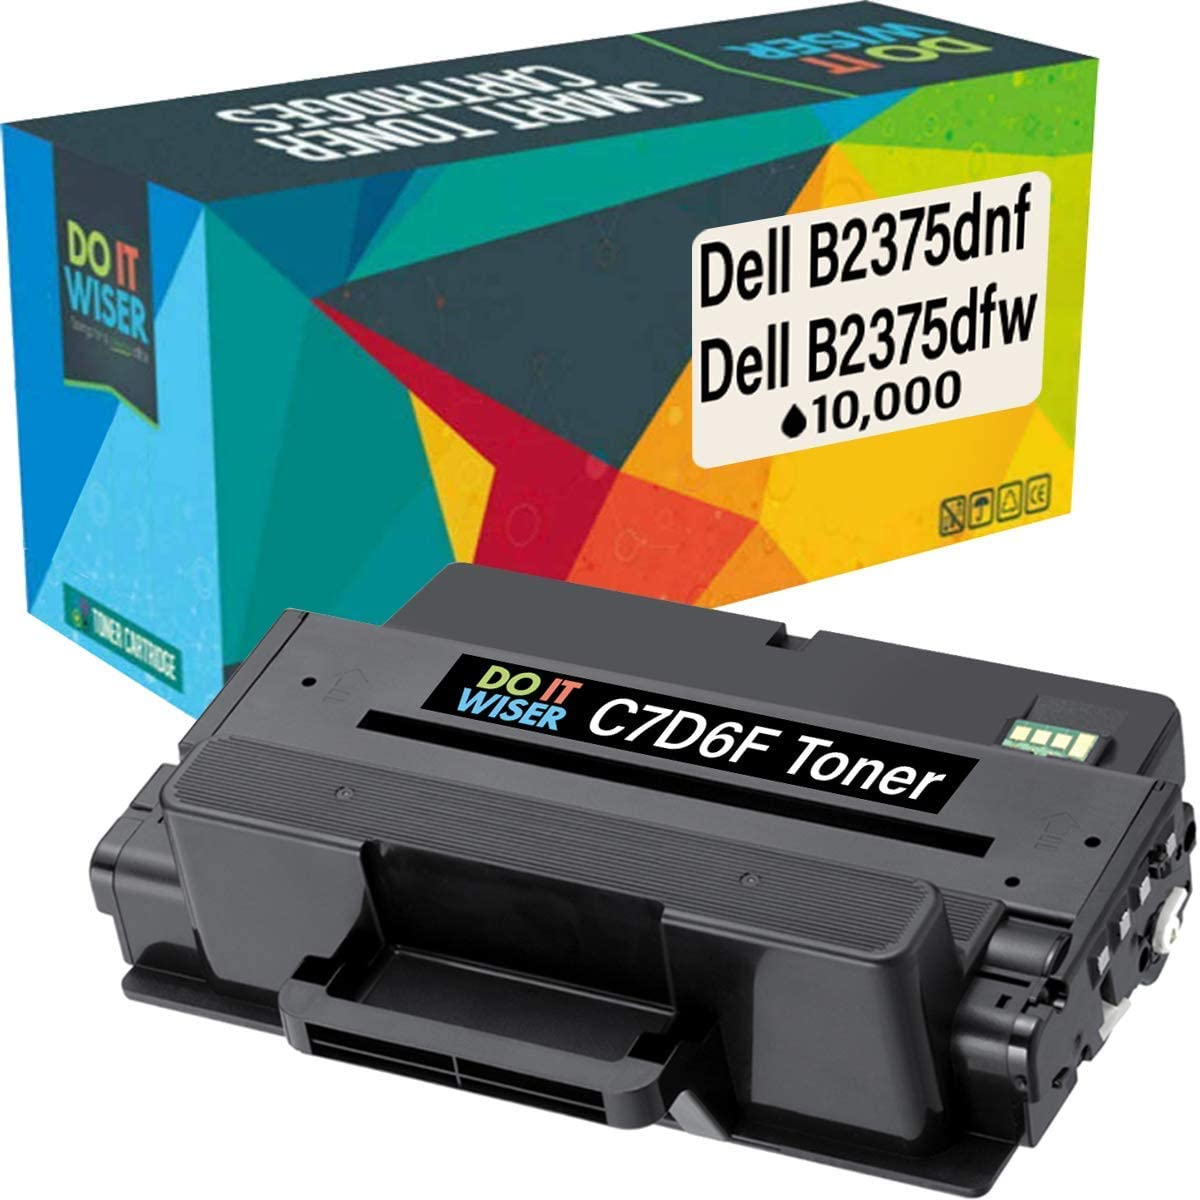 Do it Wiser Compatible Toner Cartridge Replacement for C7D6F Dell B2375dnf B2375dfw B2375 | 593-BBBJ 8PTH4 (10,000 Pages)